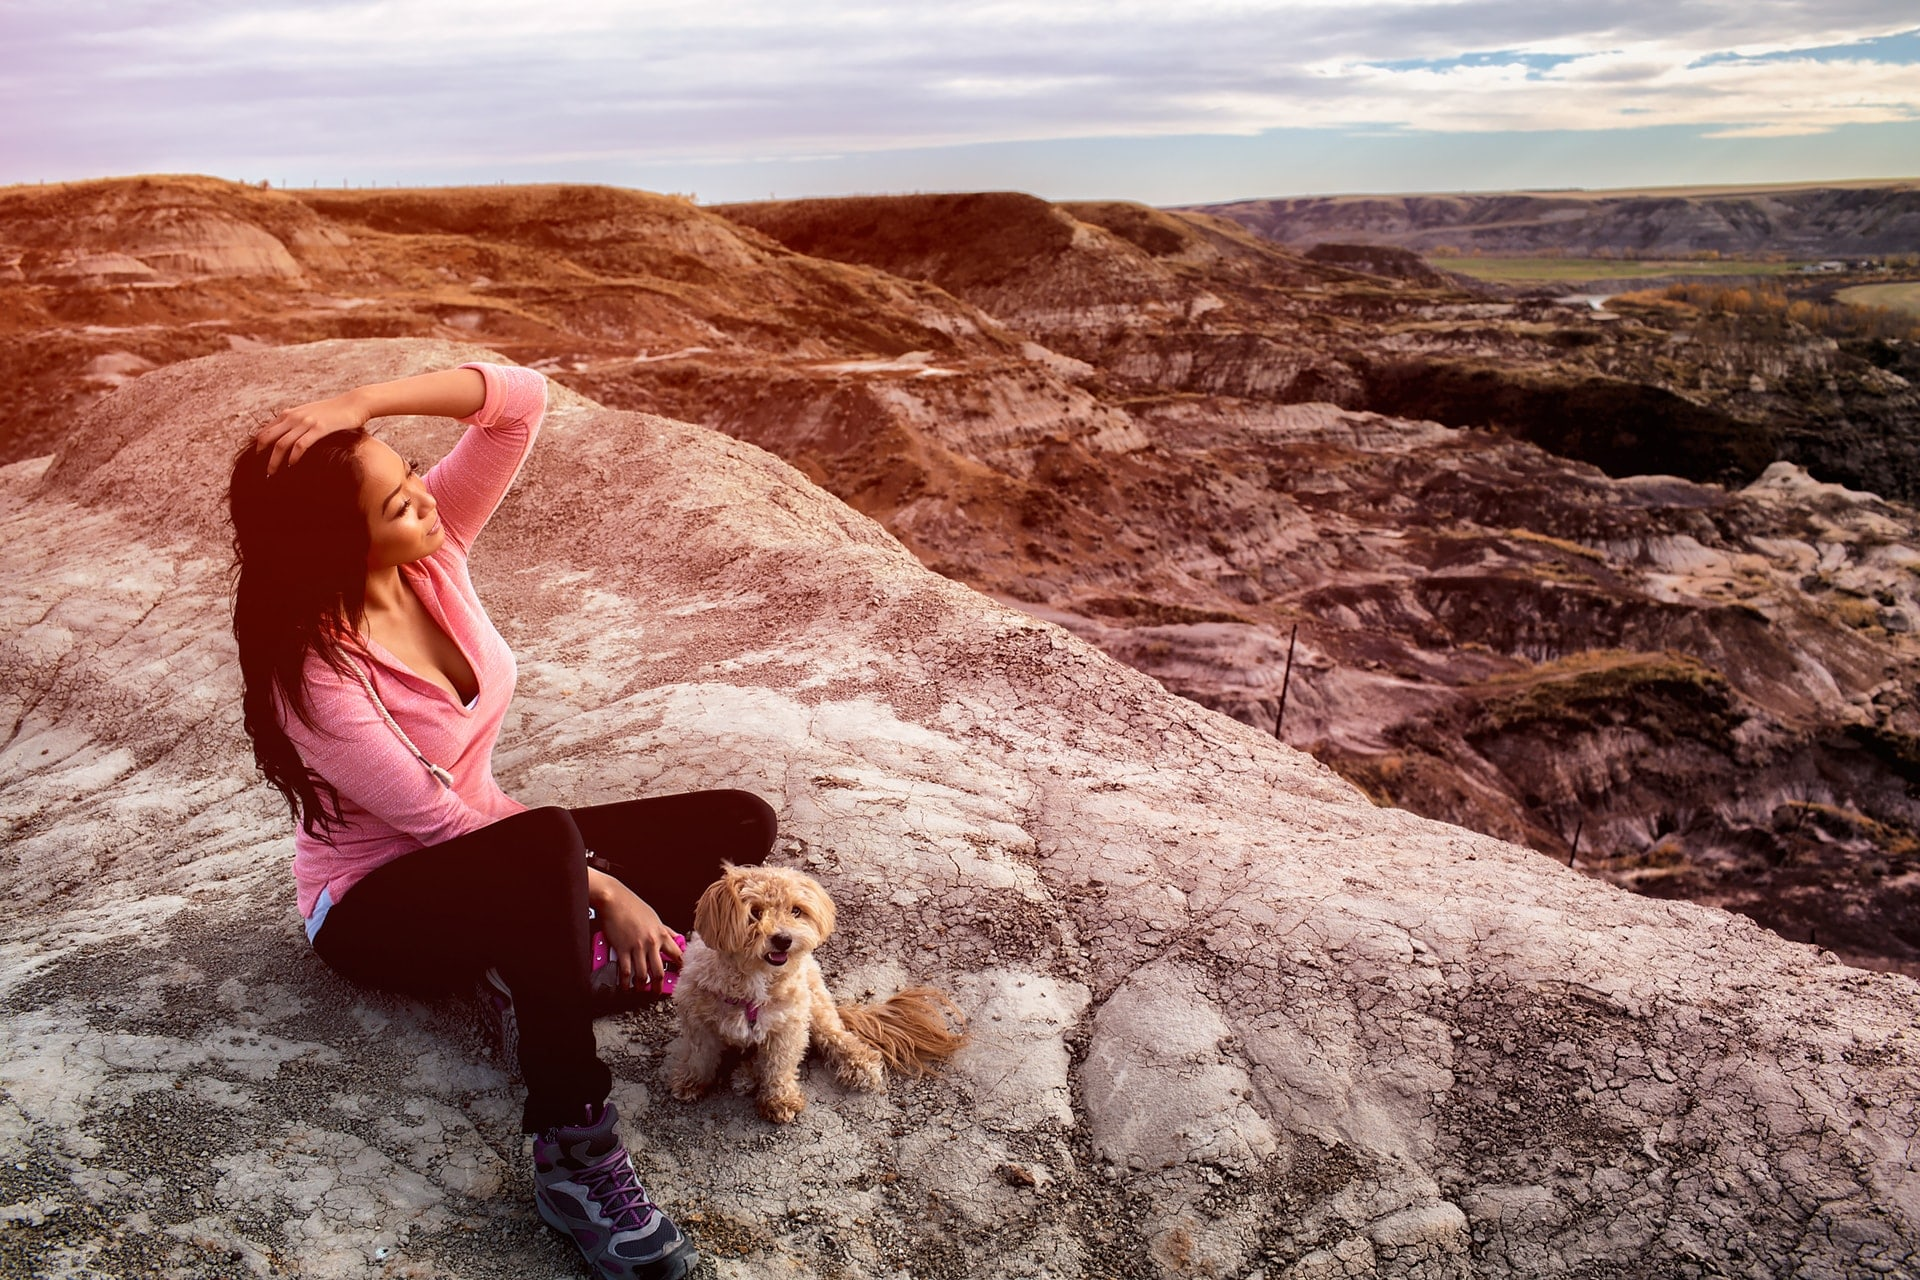 My cute puppy and Saven Mi enjoying the view at Horseshoe Canyon